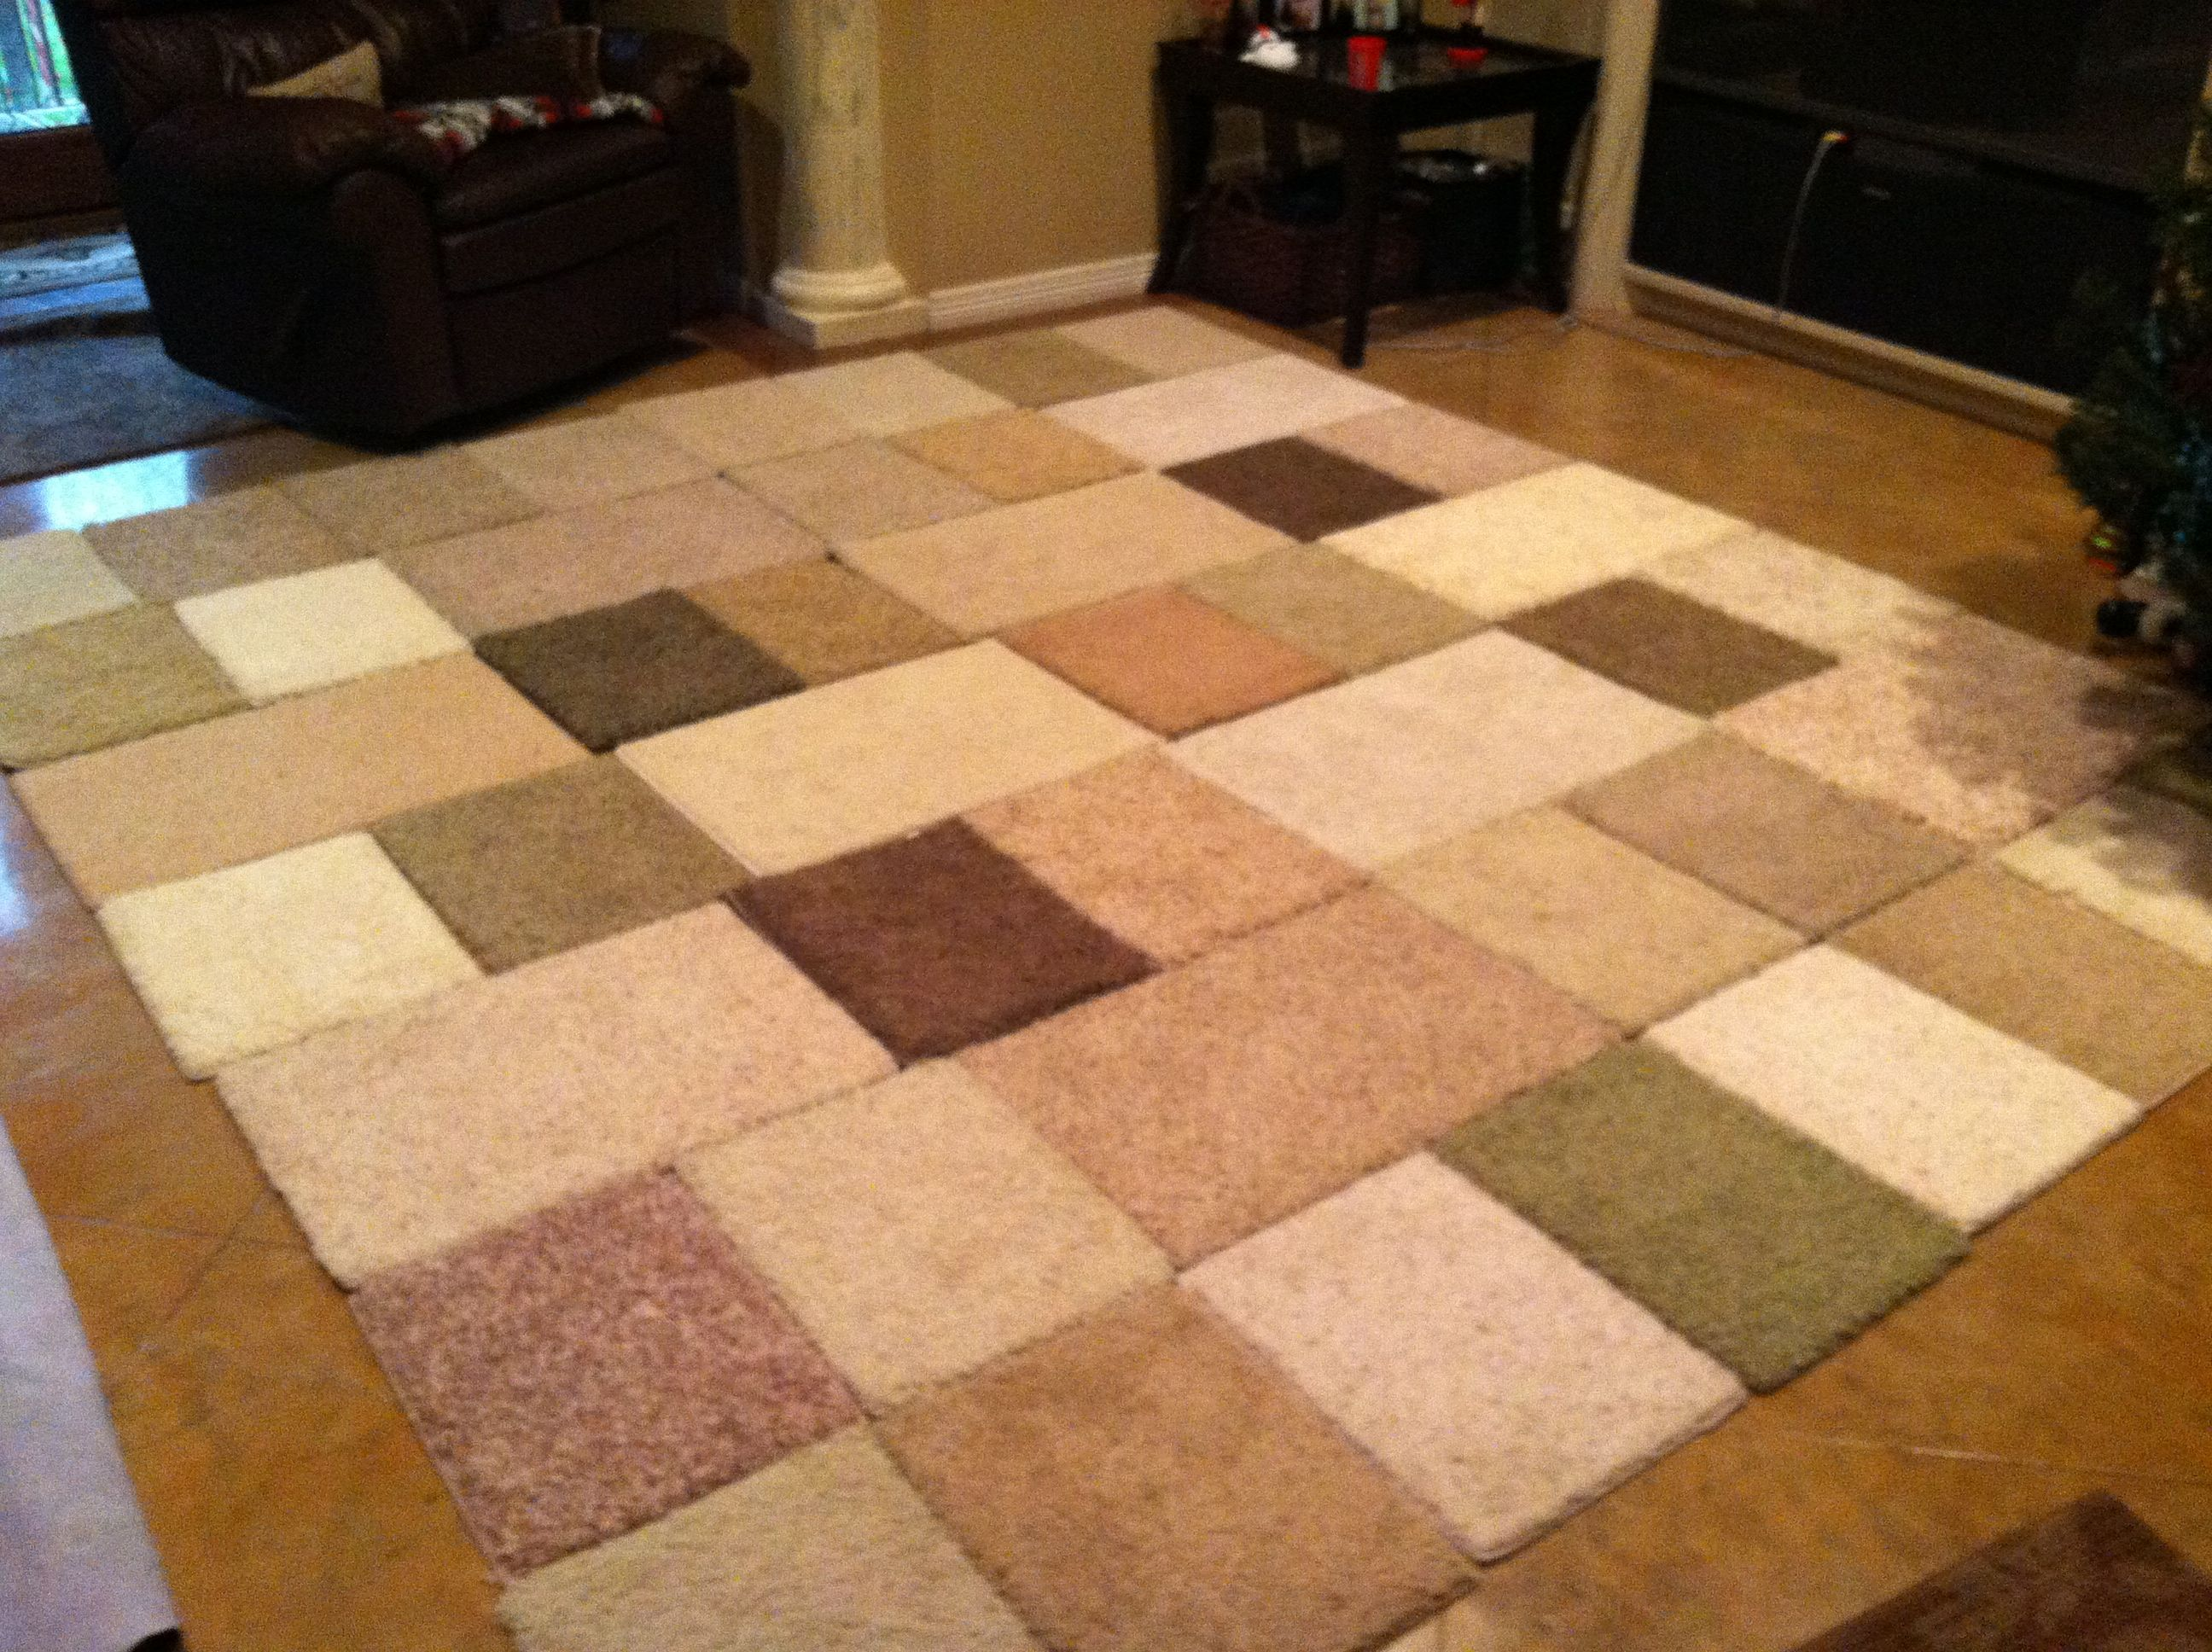 Diy Area Rug Made From Carpet Samples And Duck Tape 10ft